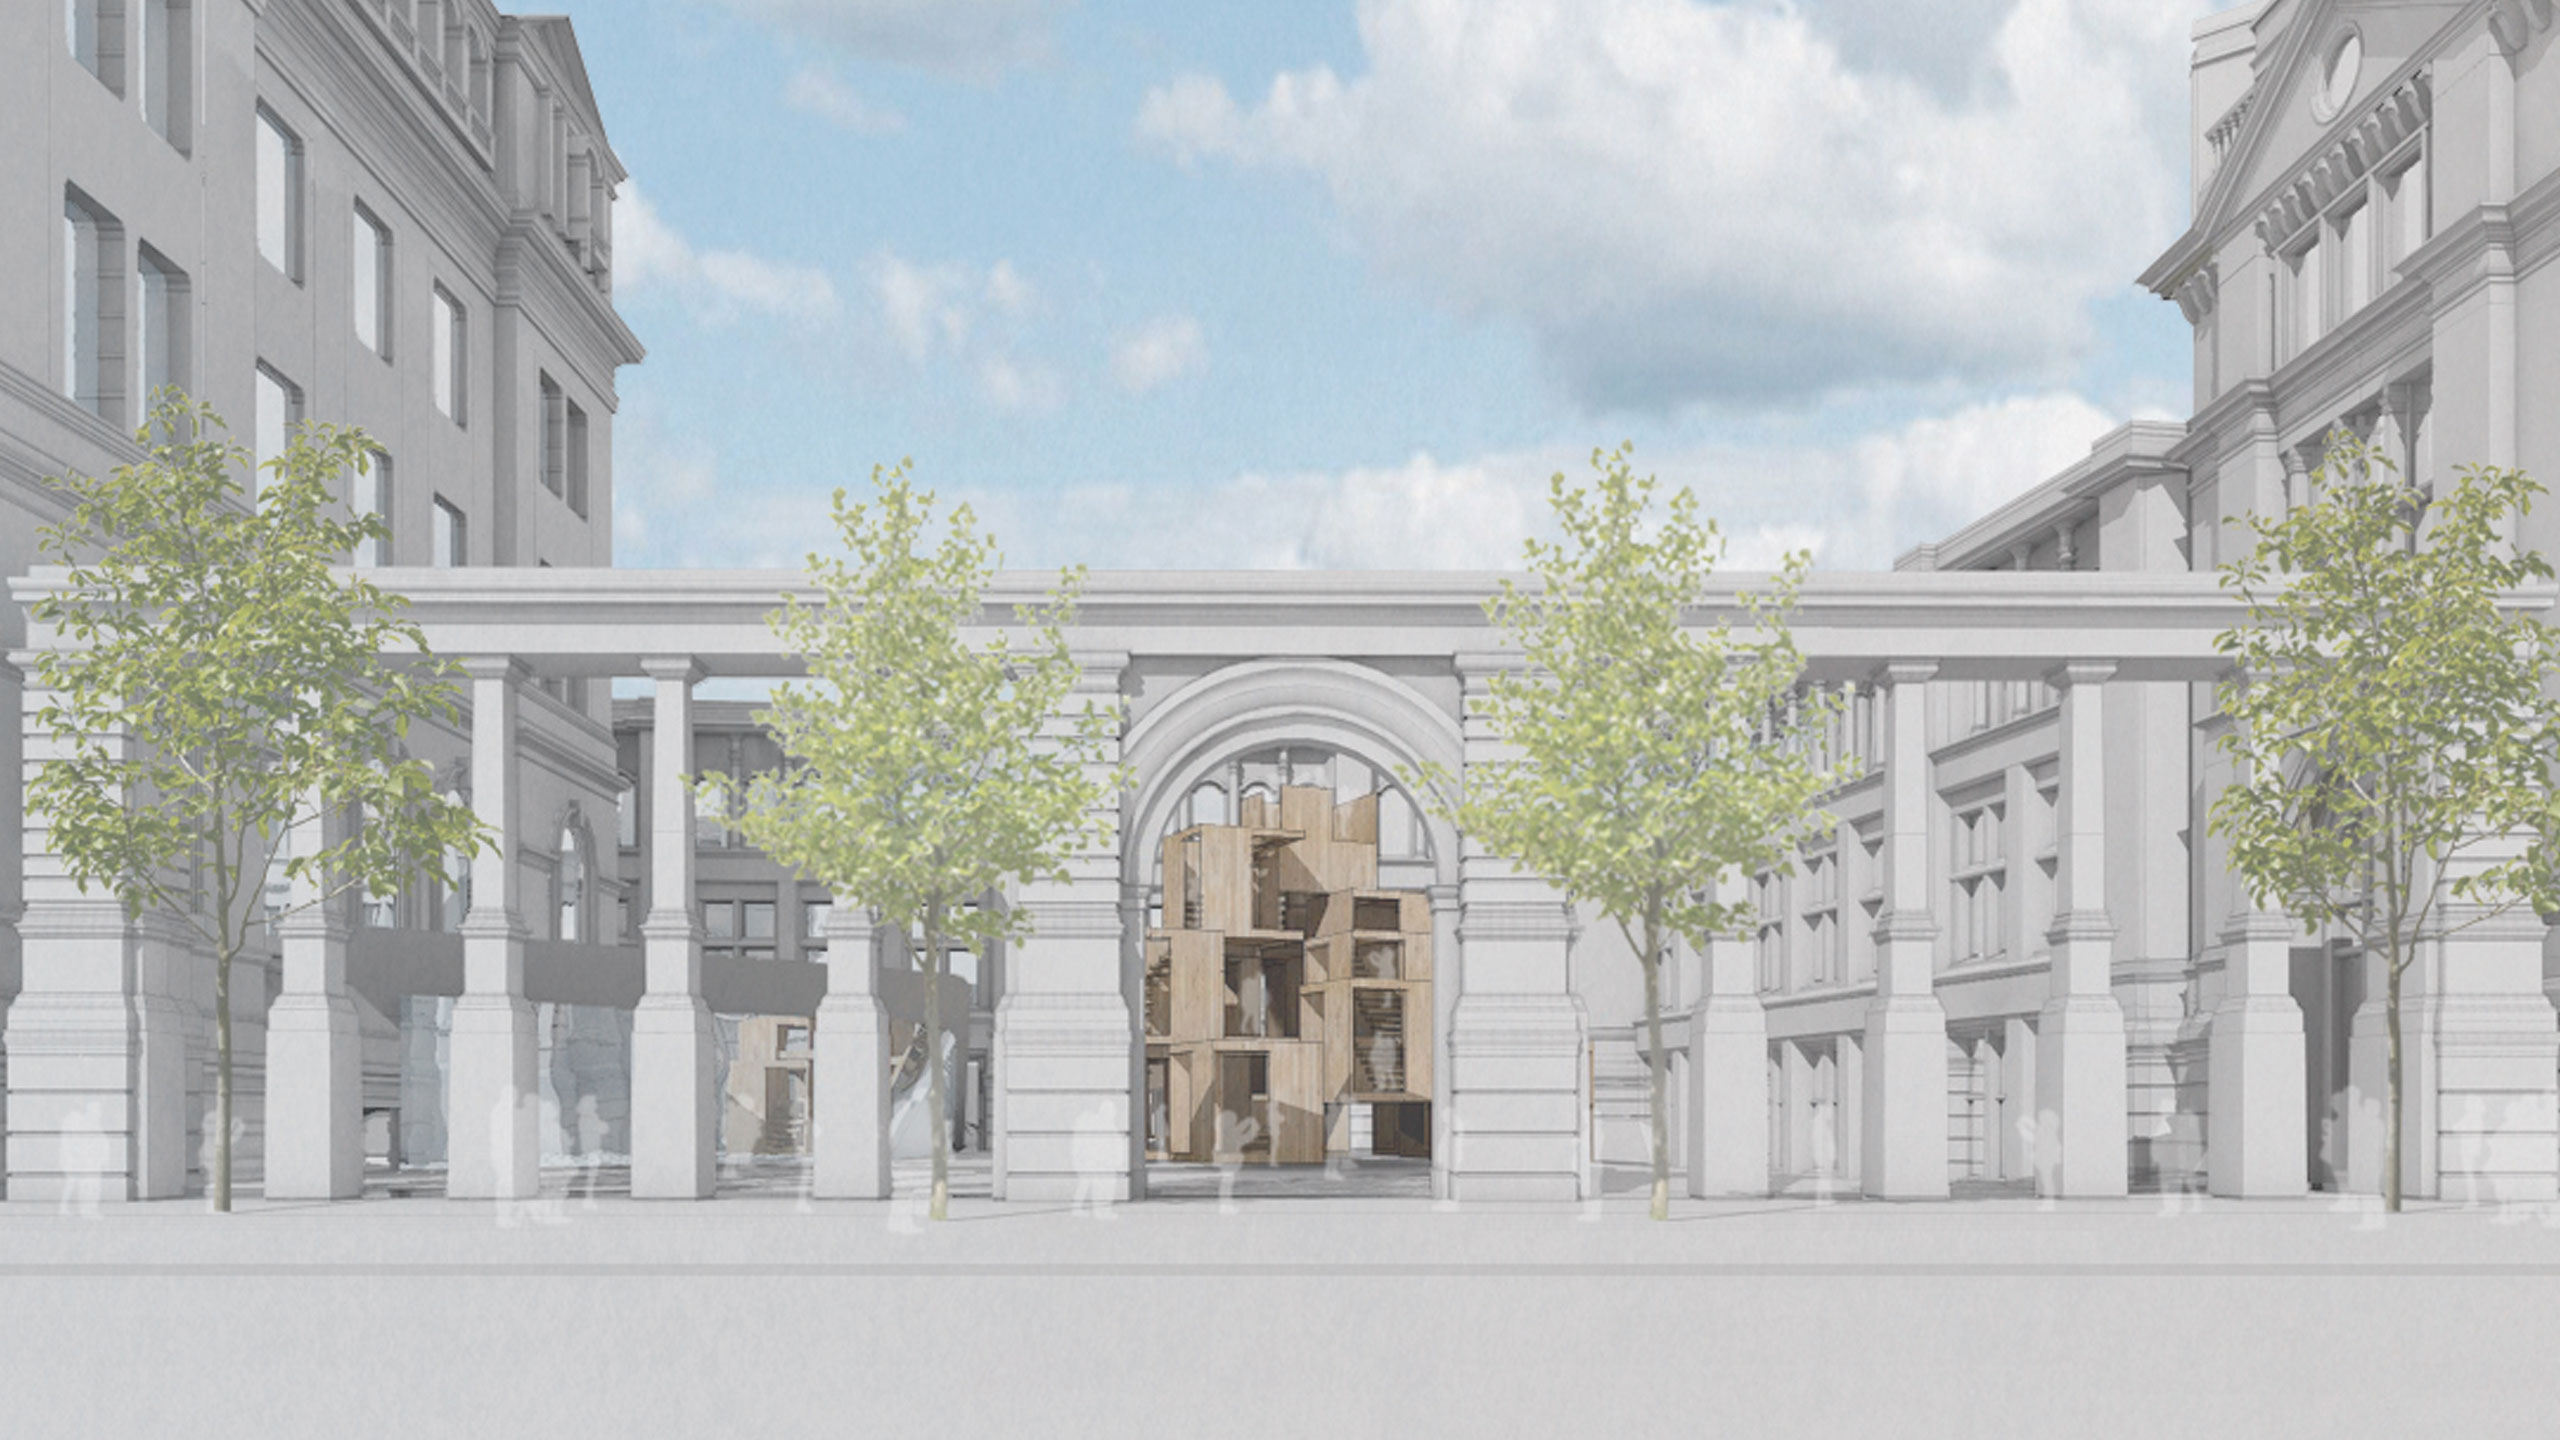 MultiPly will be shown in the newly remodelled Sackler Courtyard at the V&A Museum.